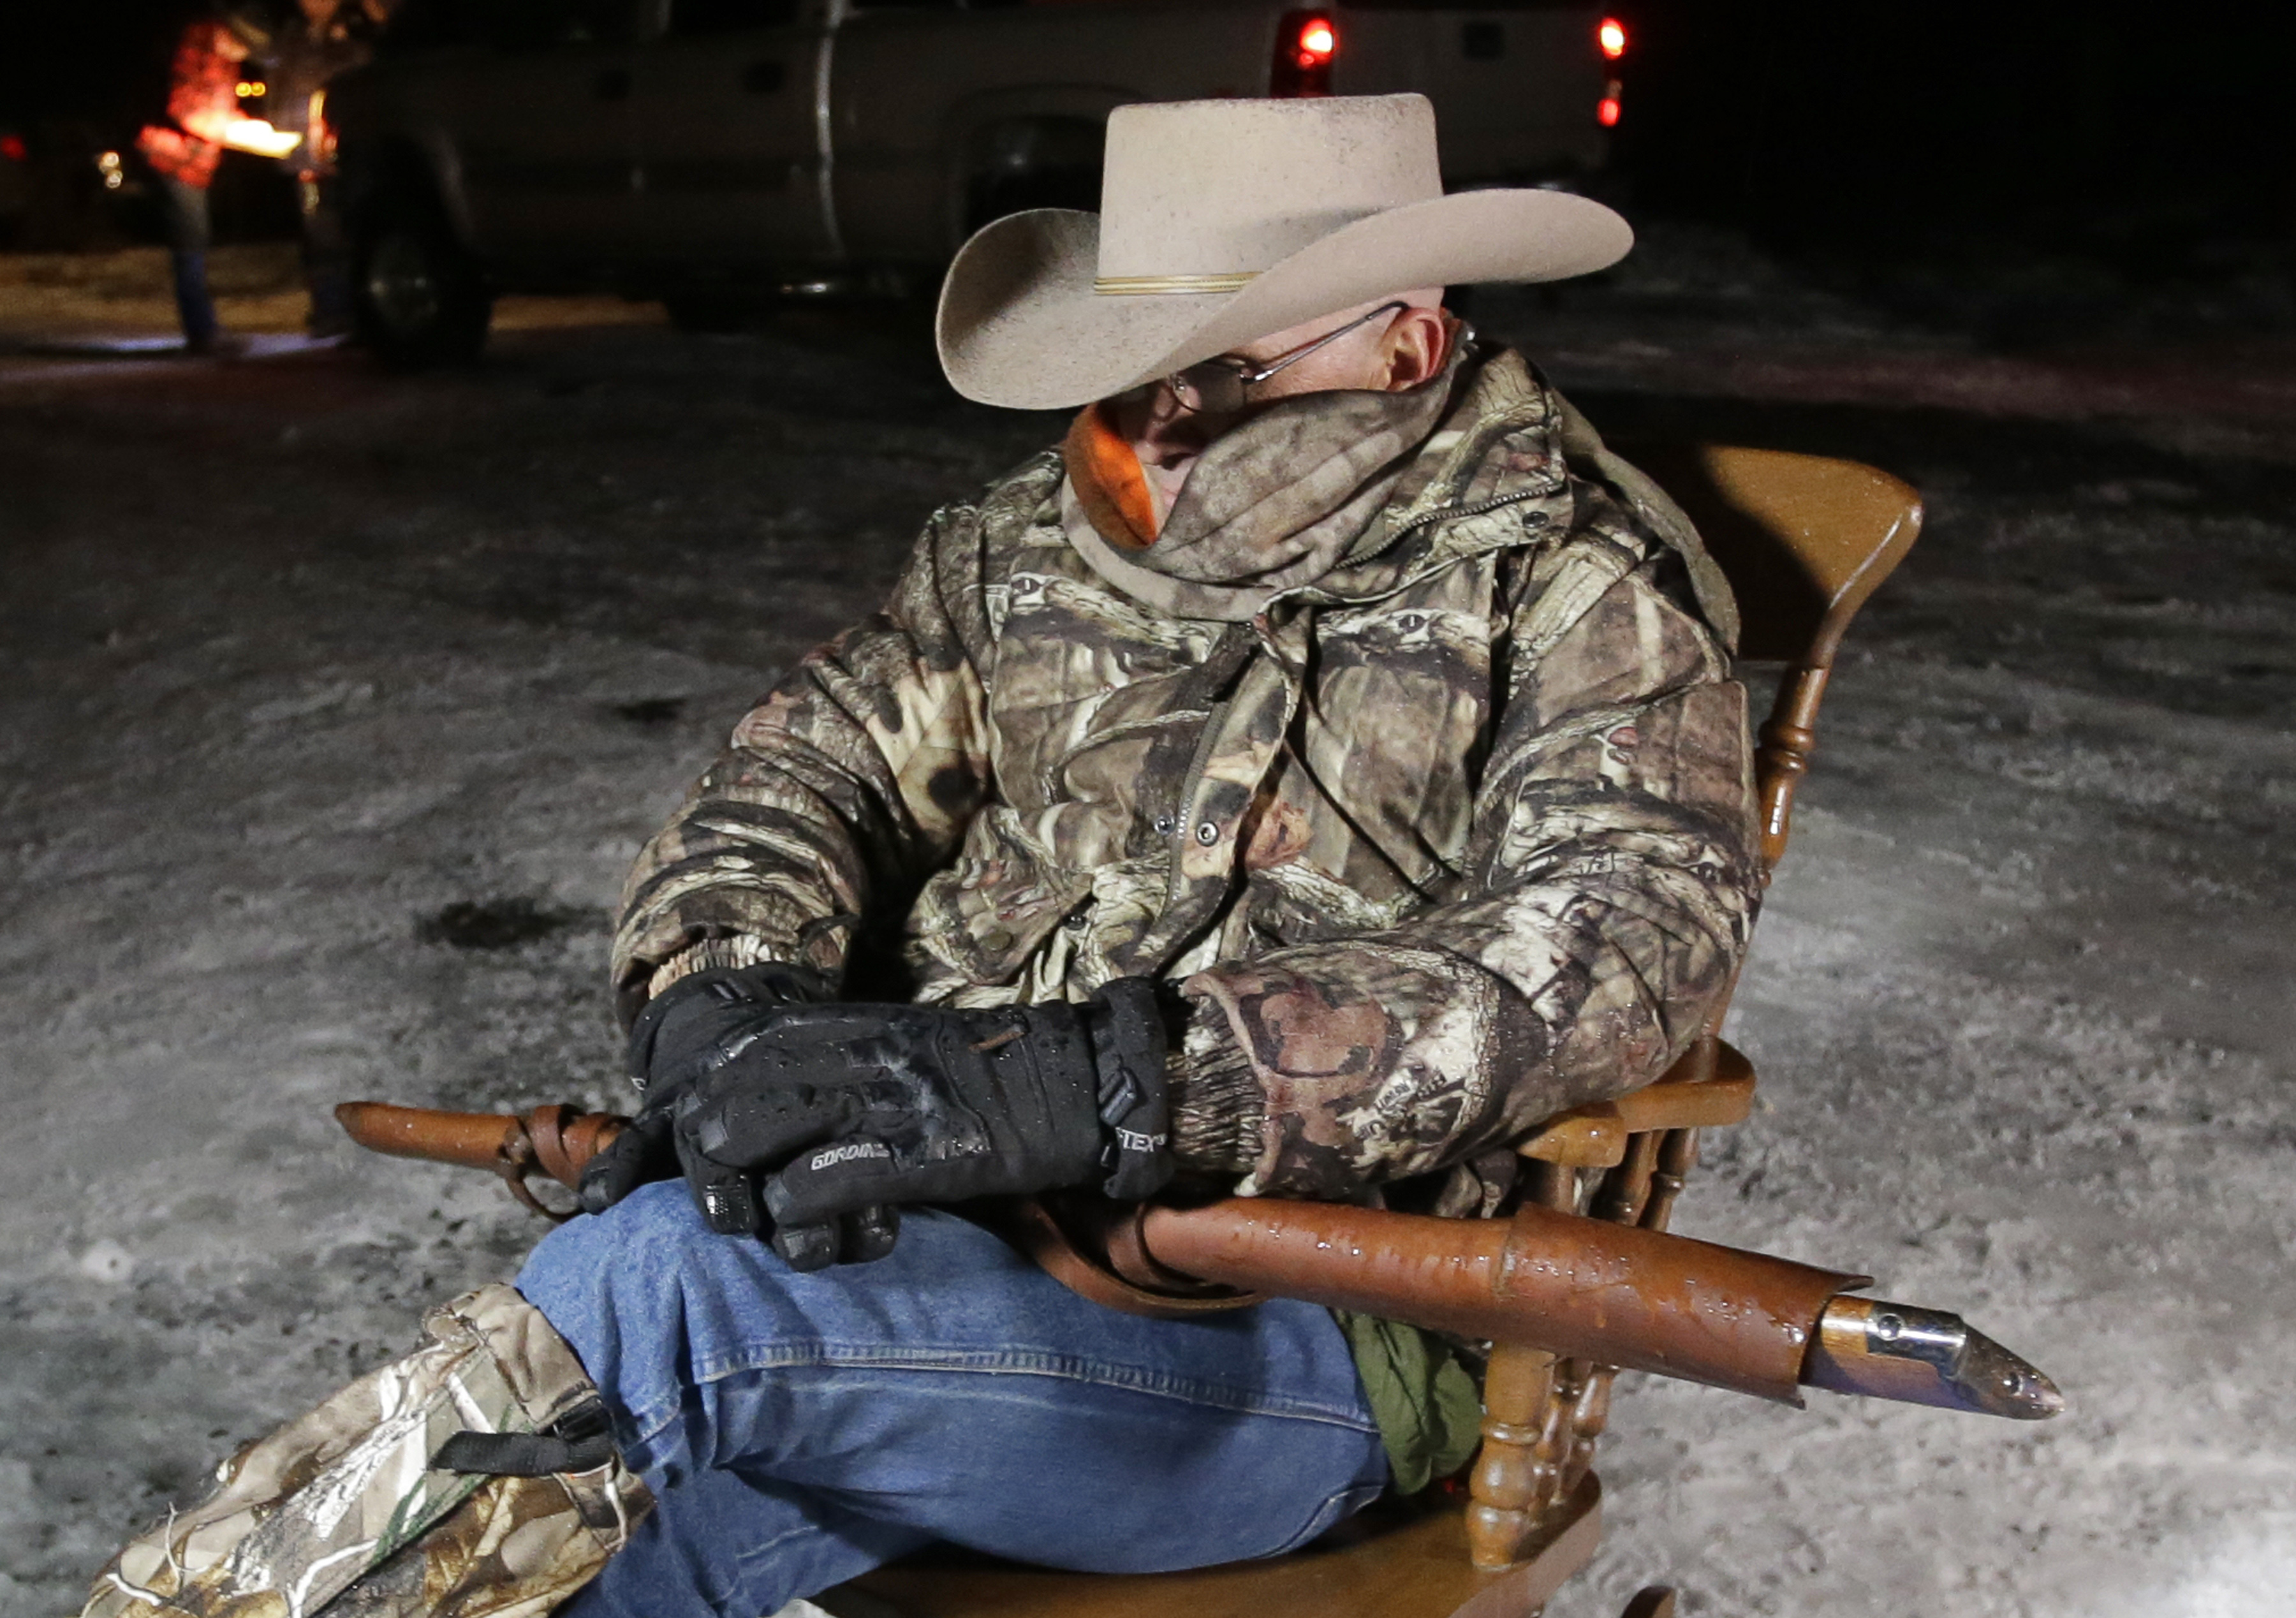 """In this Jan. 5, 2016, file photo, Arizona rancher Robert """"LaVoy"""" Finicum, holds a rifle as he guards the Malheur National Wildlife Refuge near Burns, Ore. The stunning acquittal of seven people who occupied a federal bird refuge in Oregon as part of a Western land dispute was a rejection of the prosecution's conspiracy case, not an endorsement of the armed protest, a juror said Friday, Harney County, Oregon, Oct. 28, 2016 